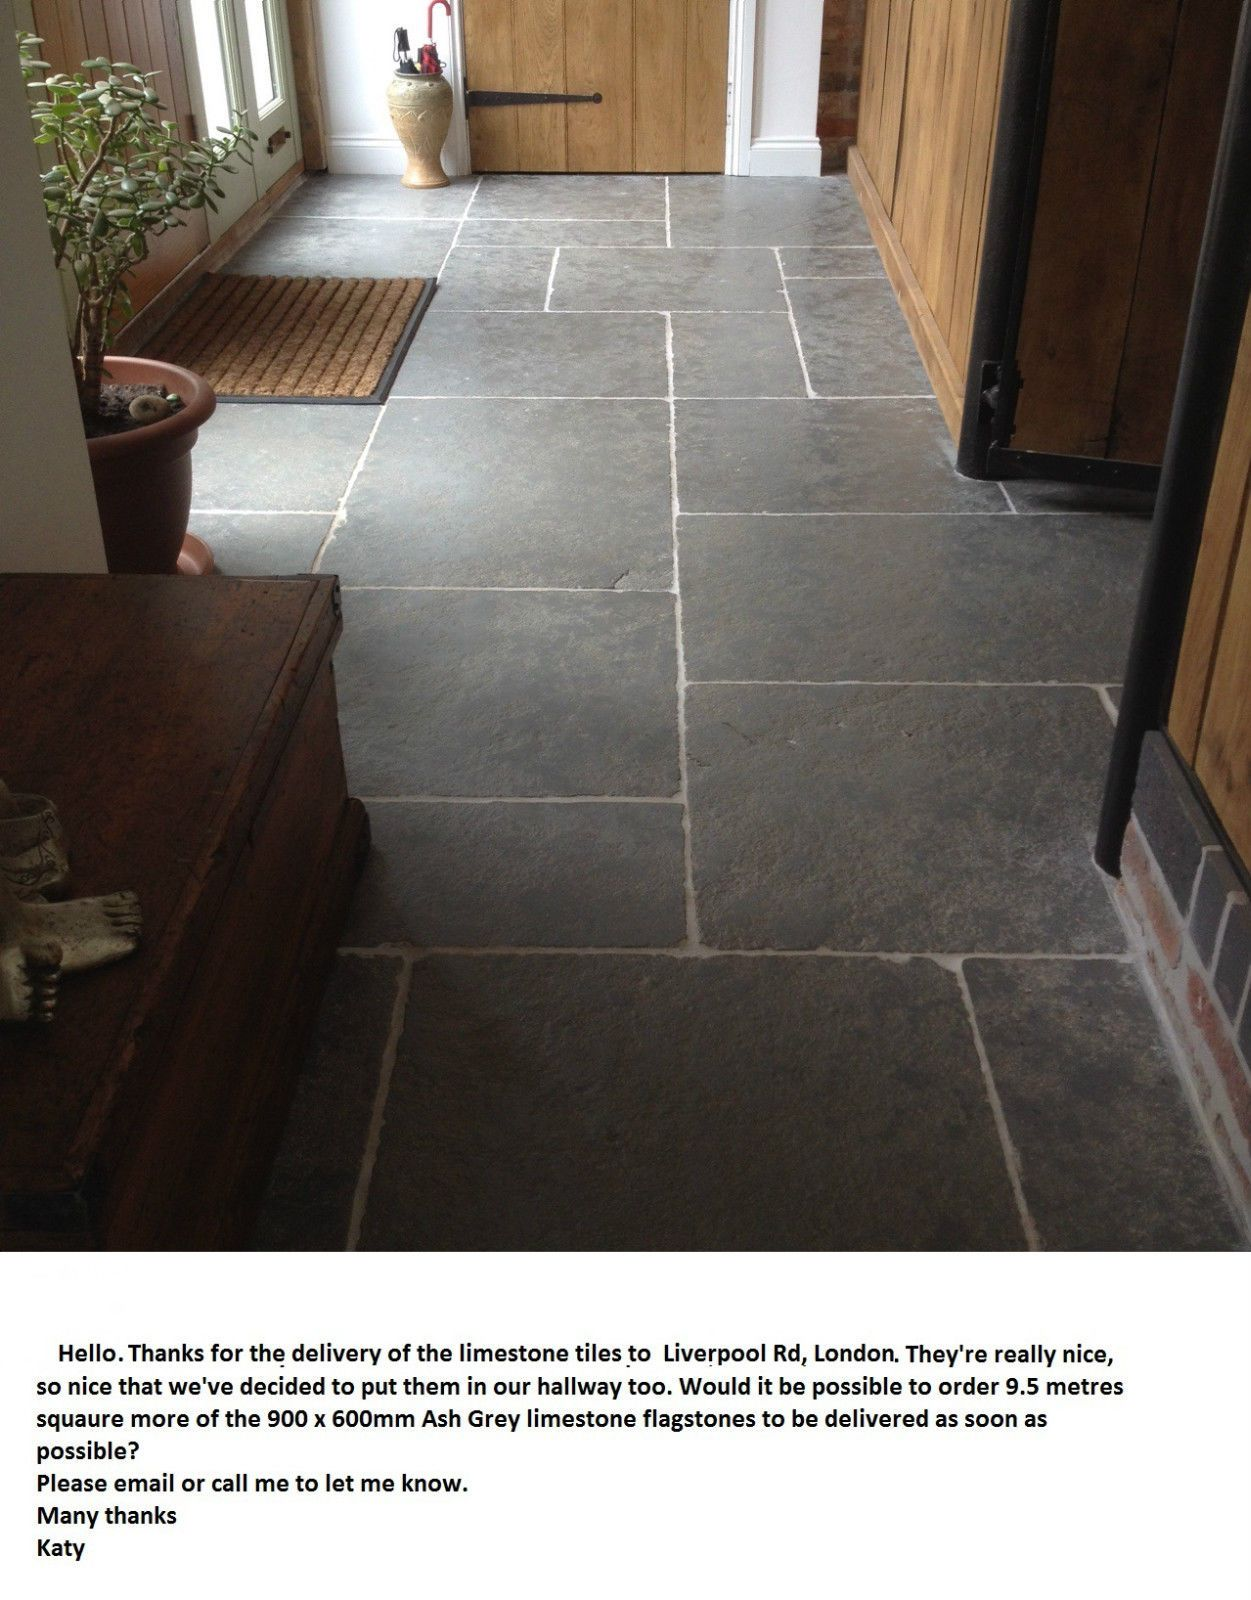 Tumbled aged ash grey limestone flagstones tiles slabs modular tumbled aged ash grey limestone flagstones tiles slabs modular pattern 20m2 doublecrazyfo Image collections